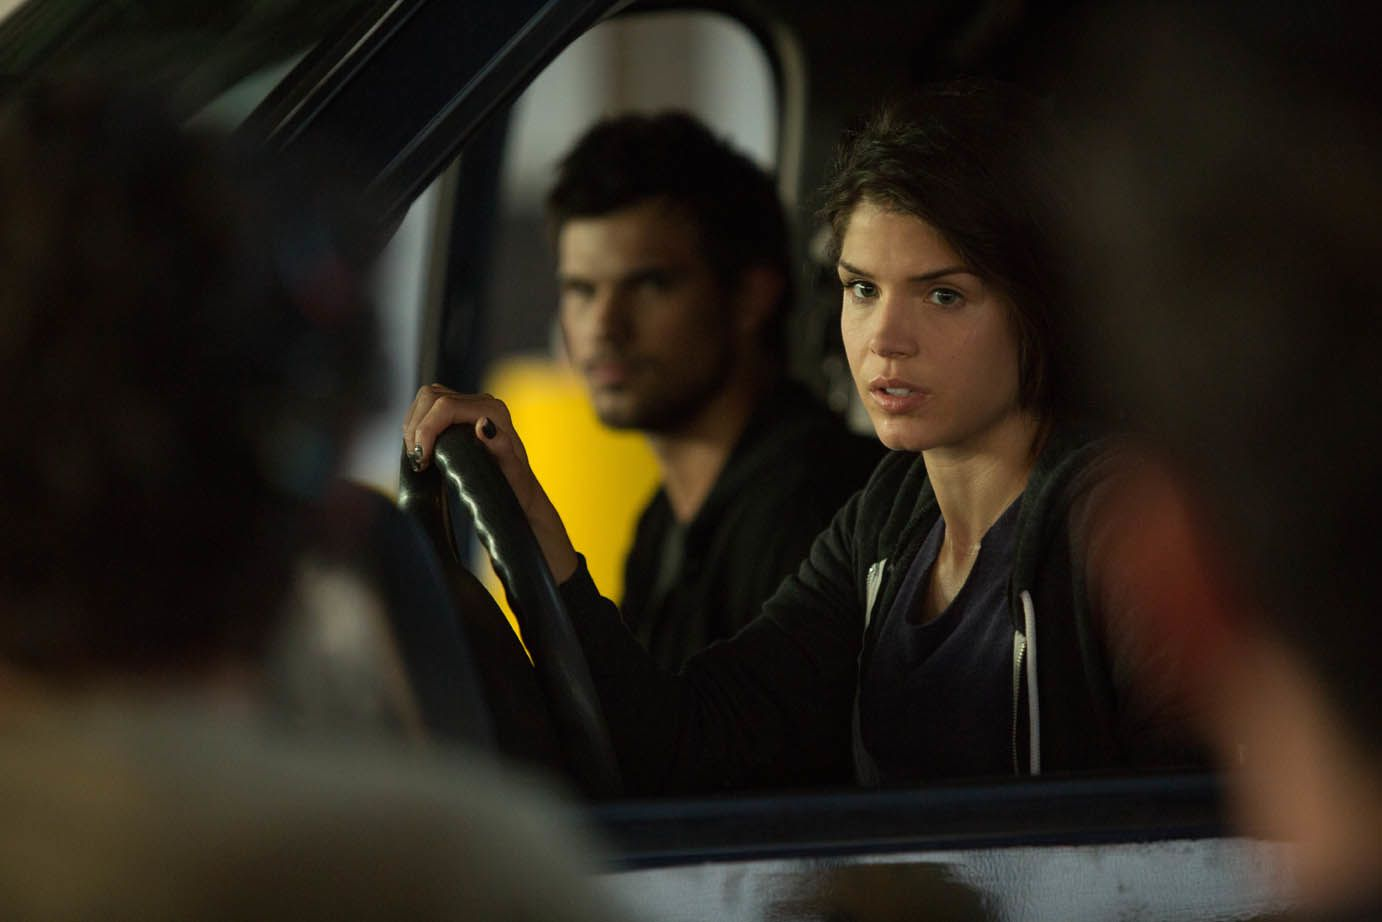 Tracers (BANDE ANNONCE VF et VOST) avec Taylor Lautner, Marie Avgeropoulos, Adam Rayner - 25 02 2015